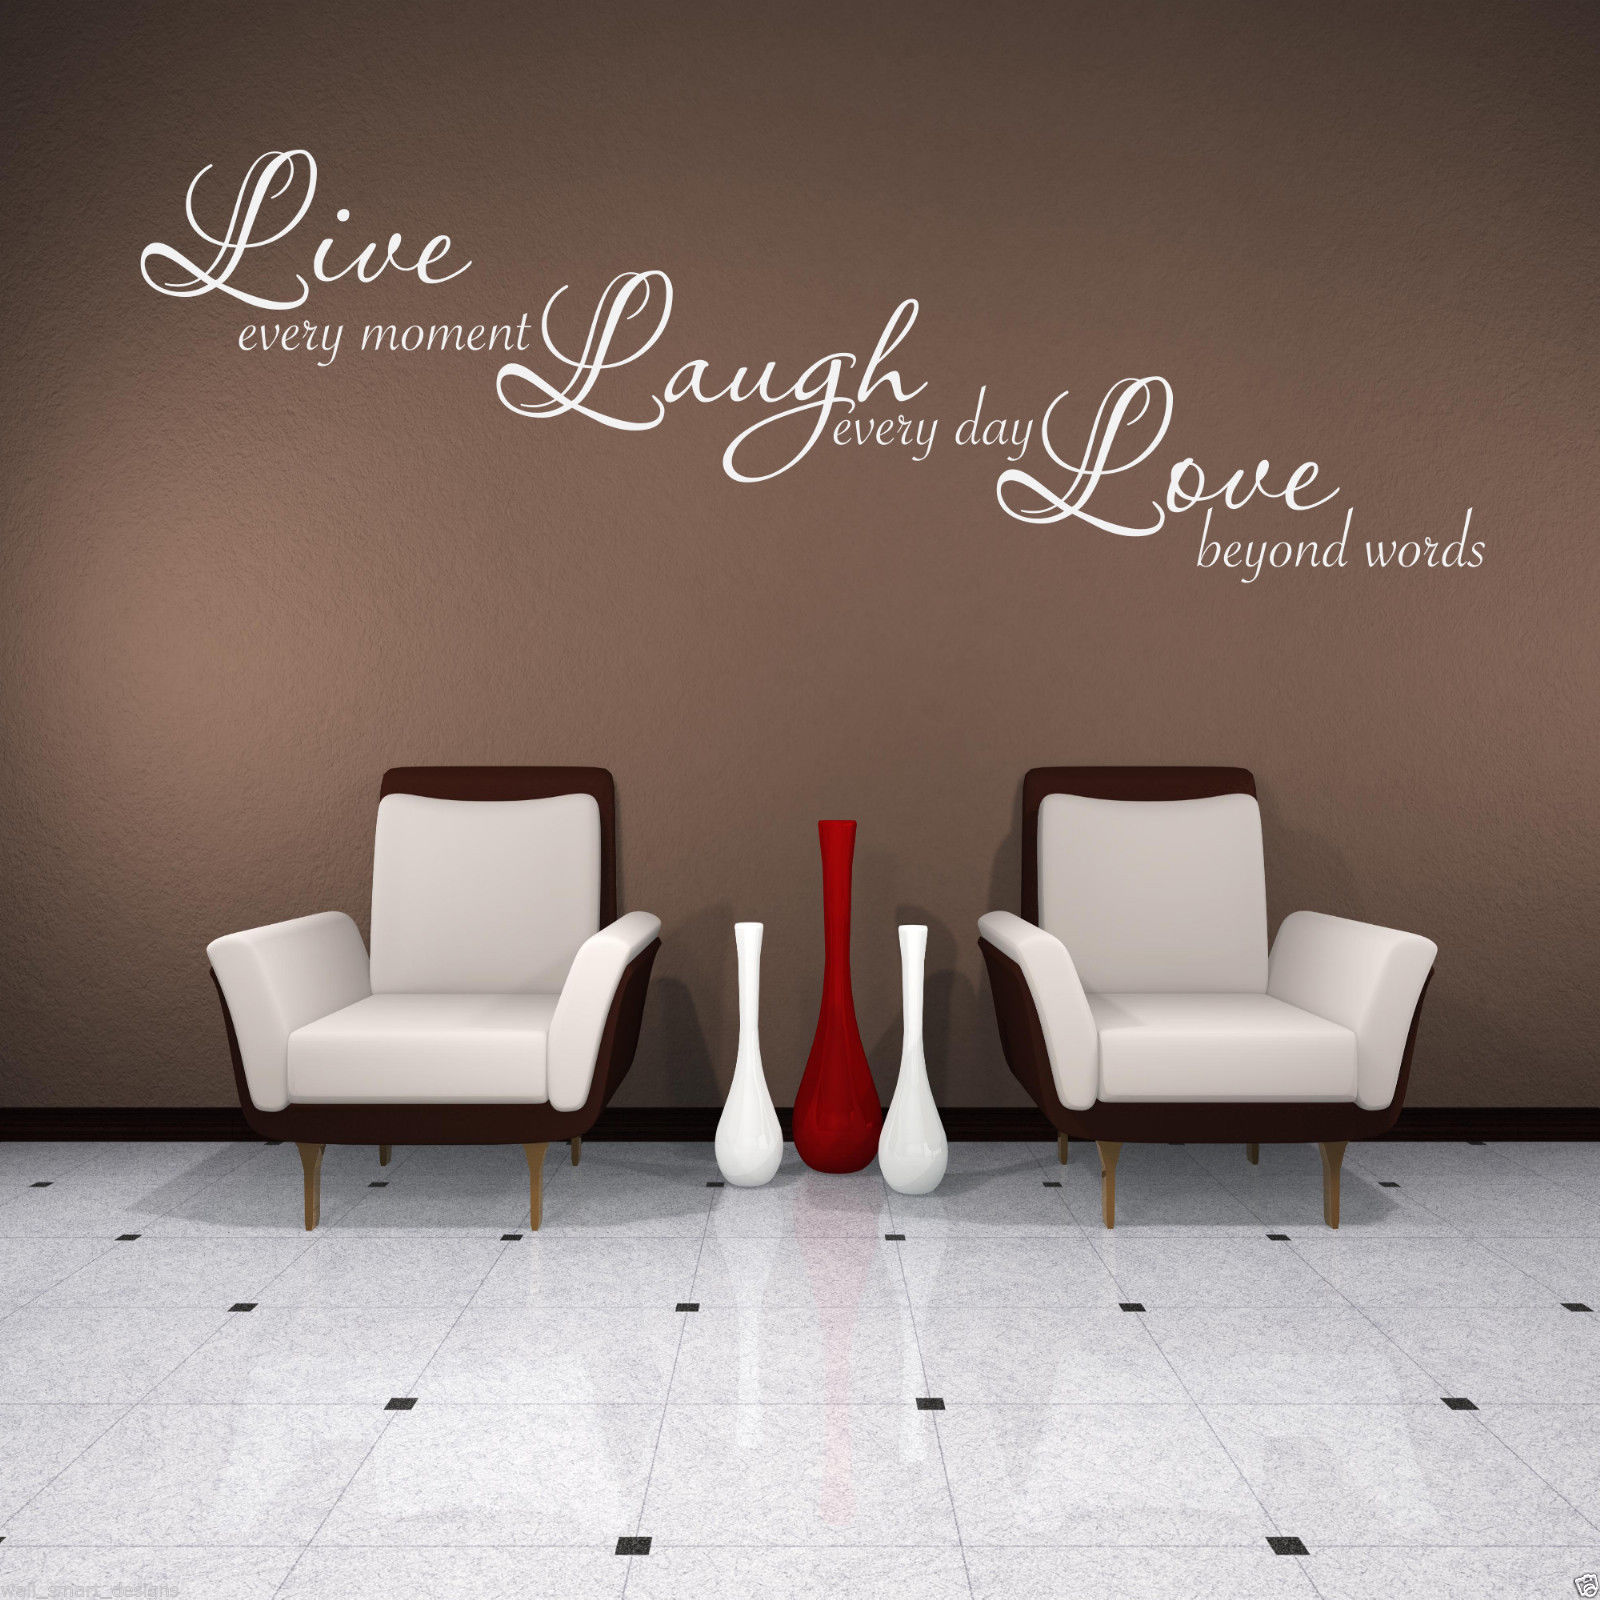 LIVE LAUGH LOVE Wall Art Sticker Lounge Quote Decal Mural Stencil Transfer 3